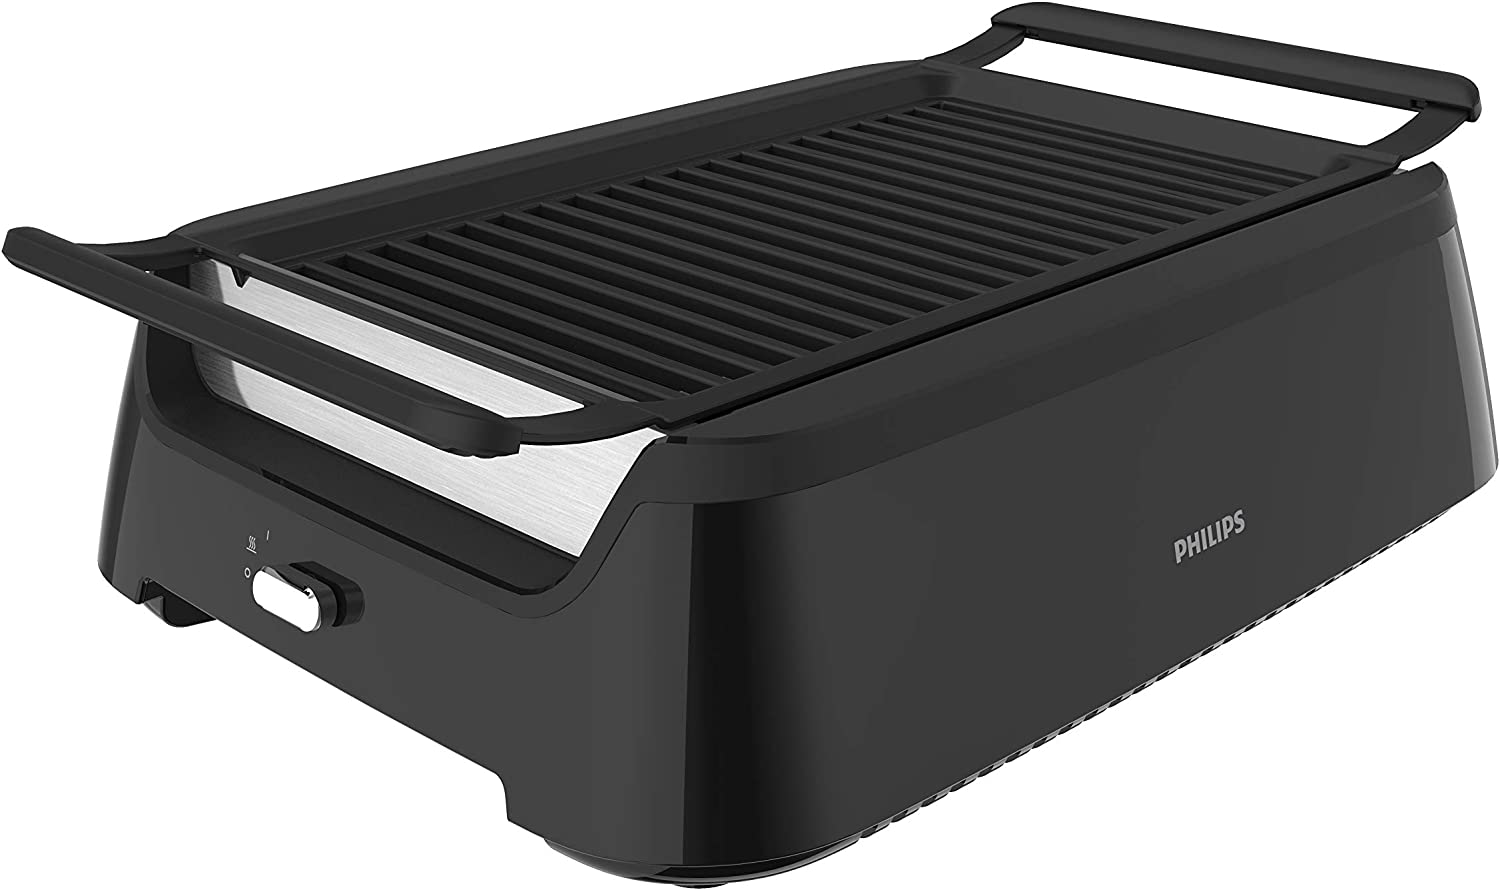 Best infrared grill-Phillips smoke-less HD6371 infrared grill